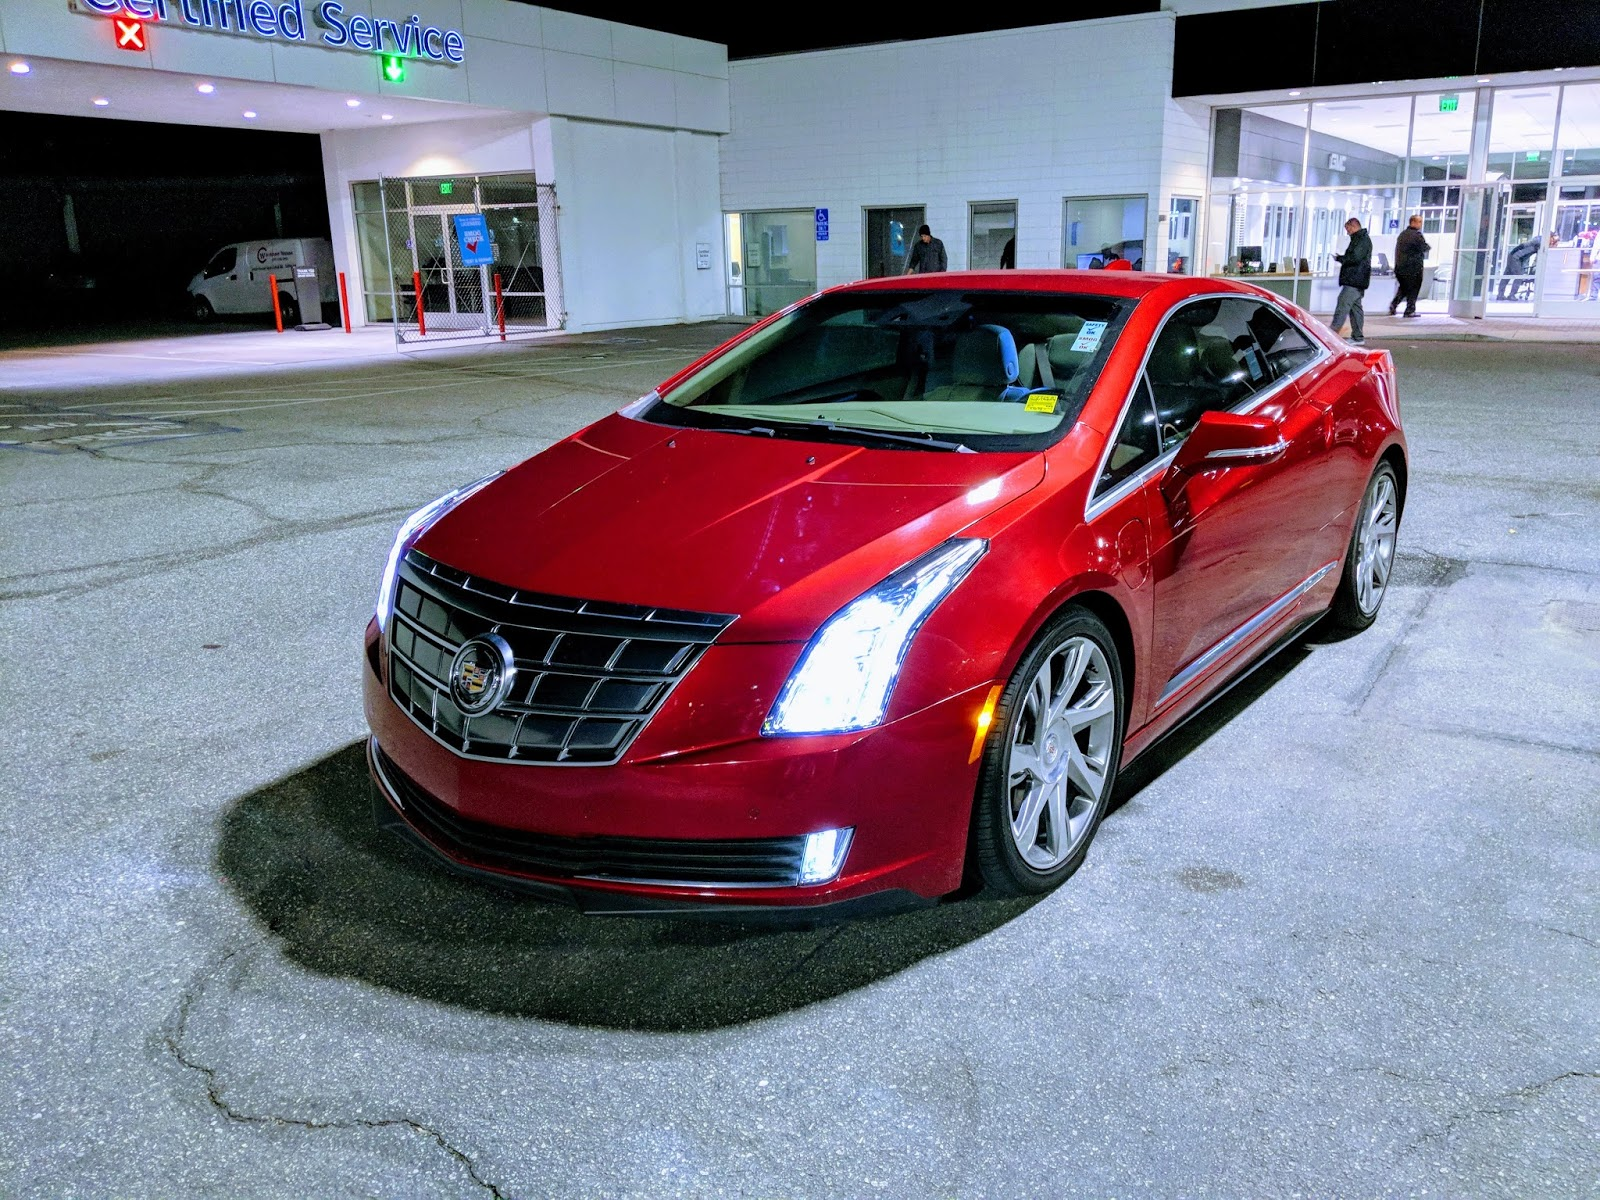 The Resistor Network Groking Cadillac Elr Buy - Medium